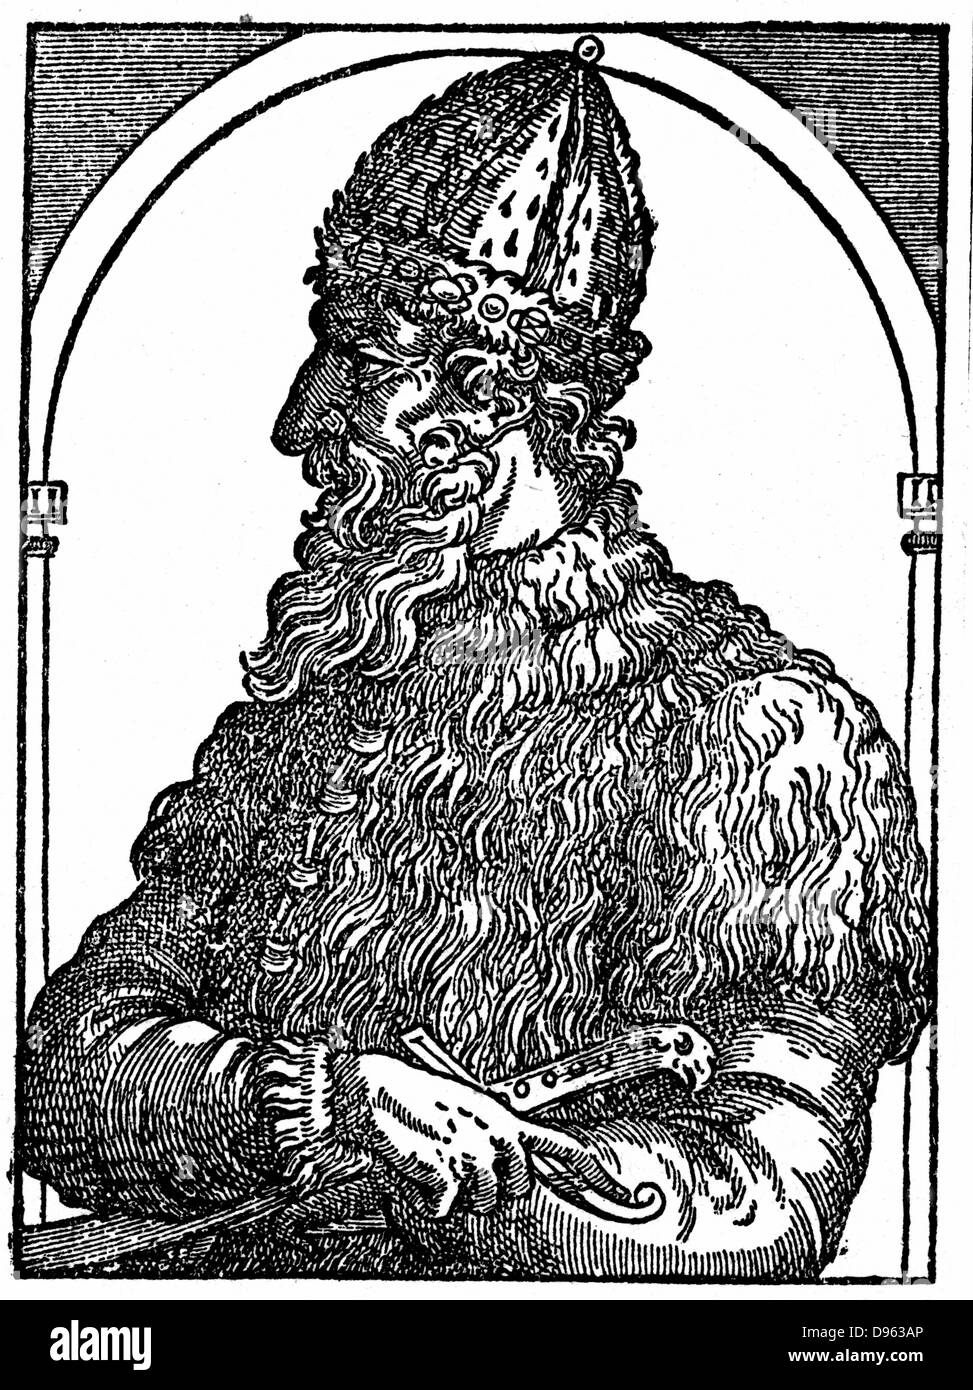 Ivan IV (Ivan the Terrible) 1530-1584. Tsar of Russia from 1533. From 16th century woodcut. - Stock Image